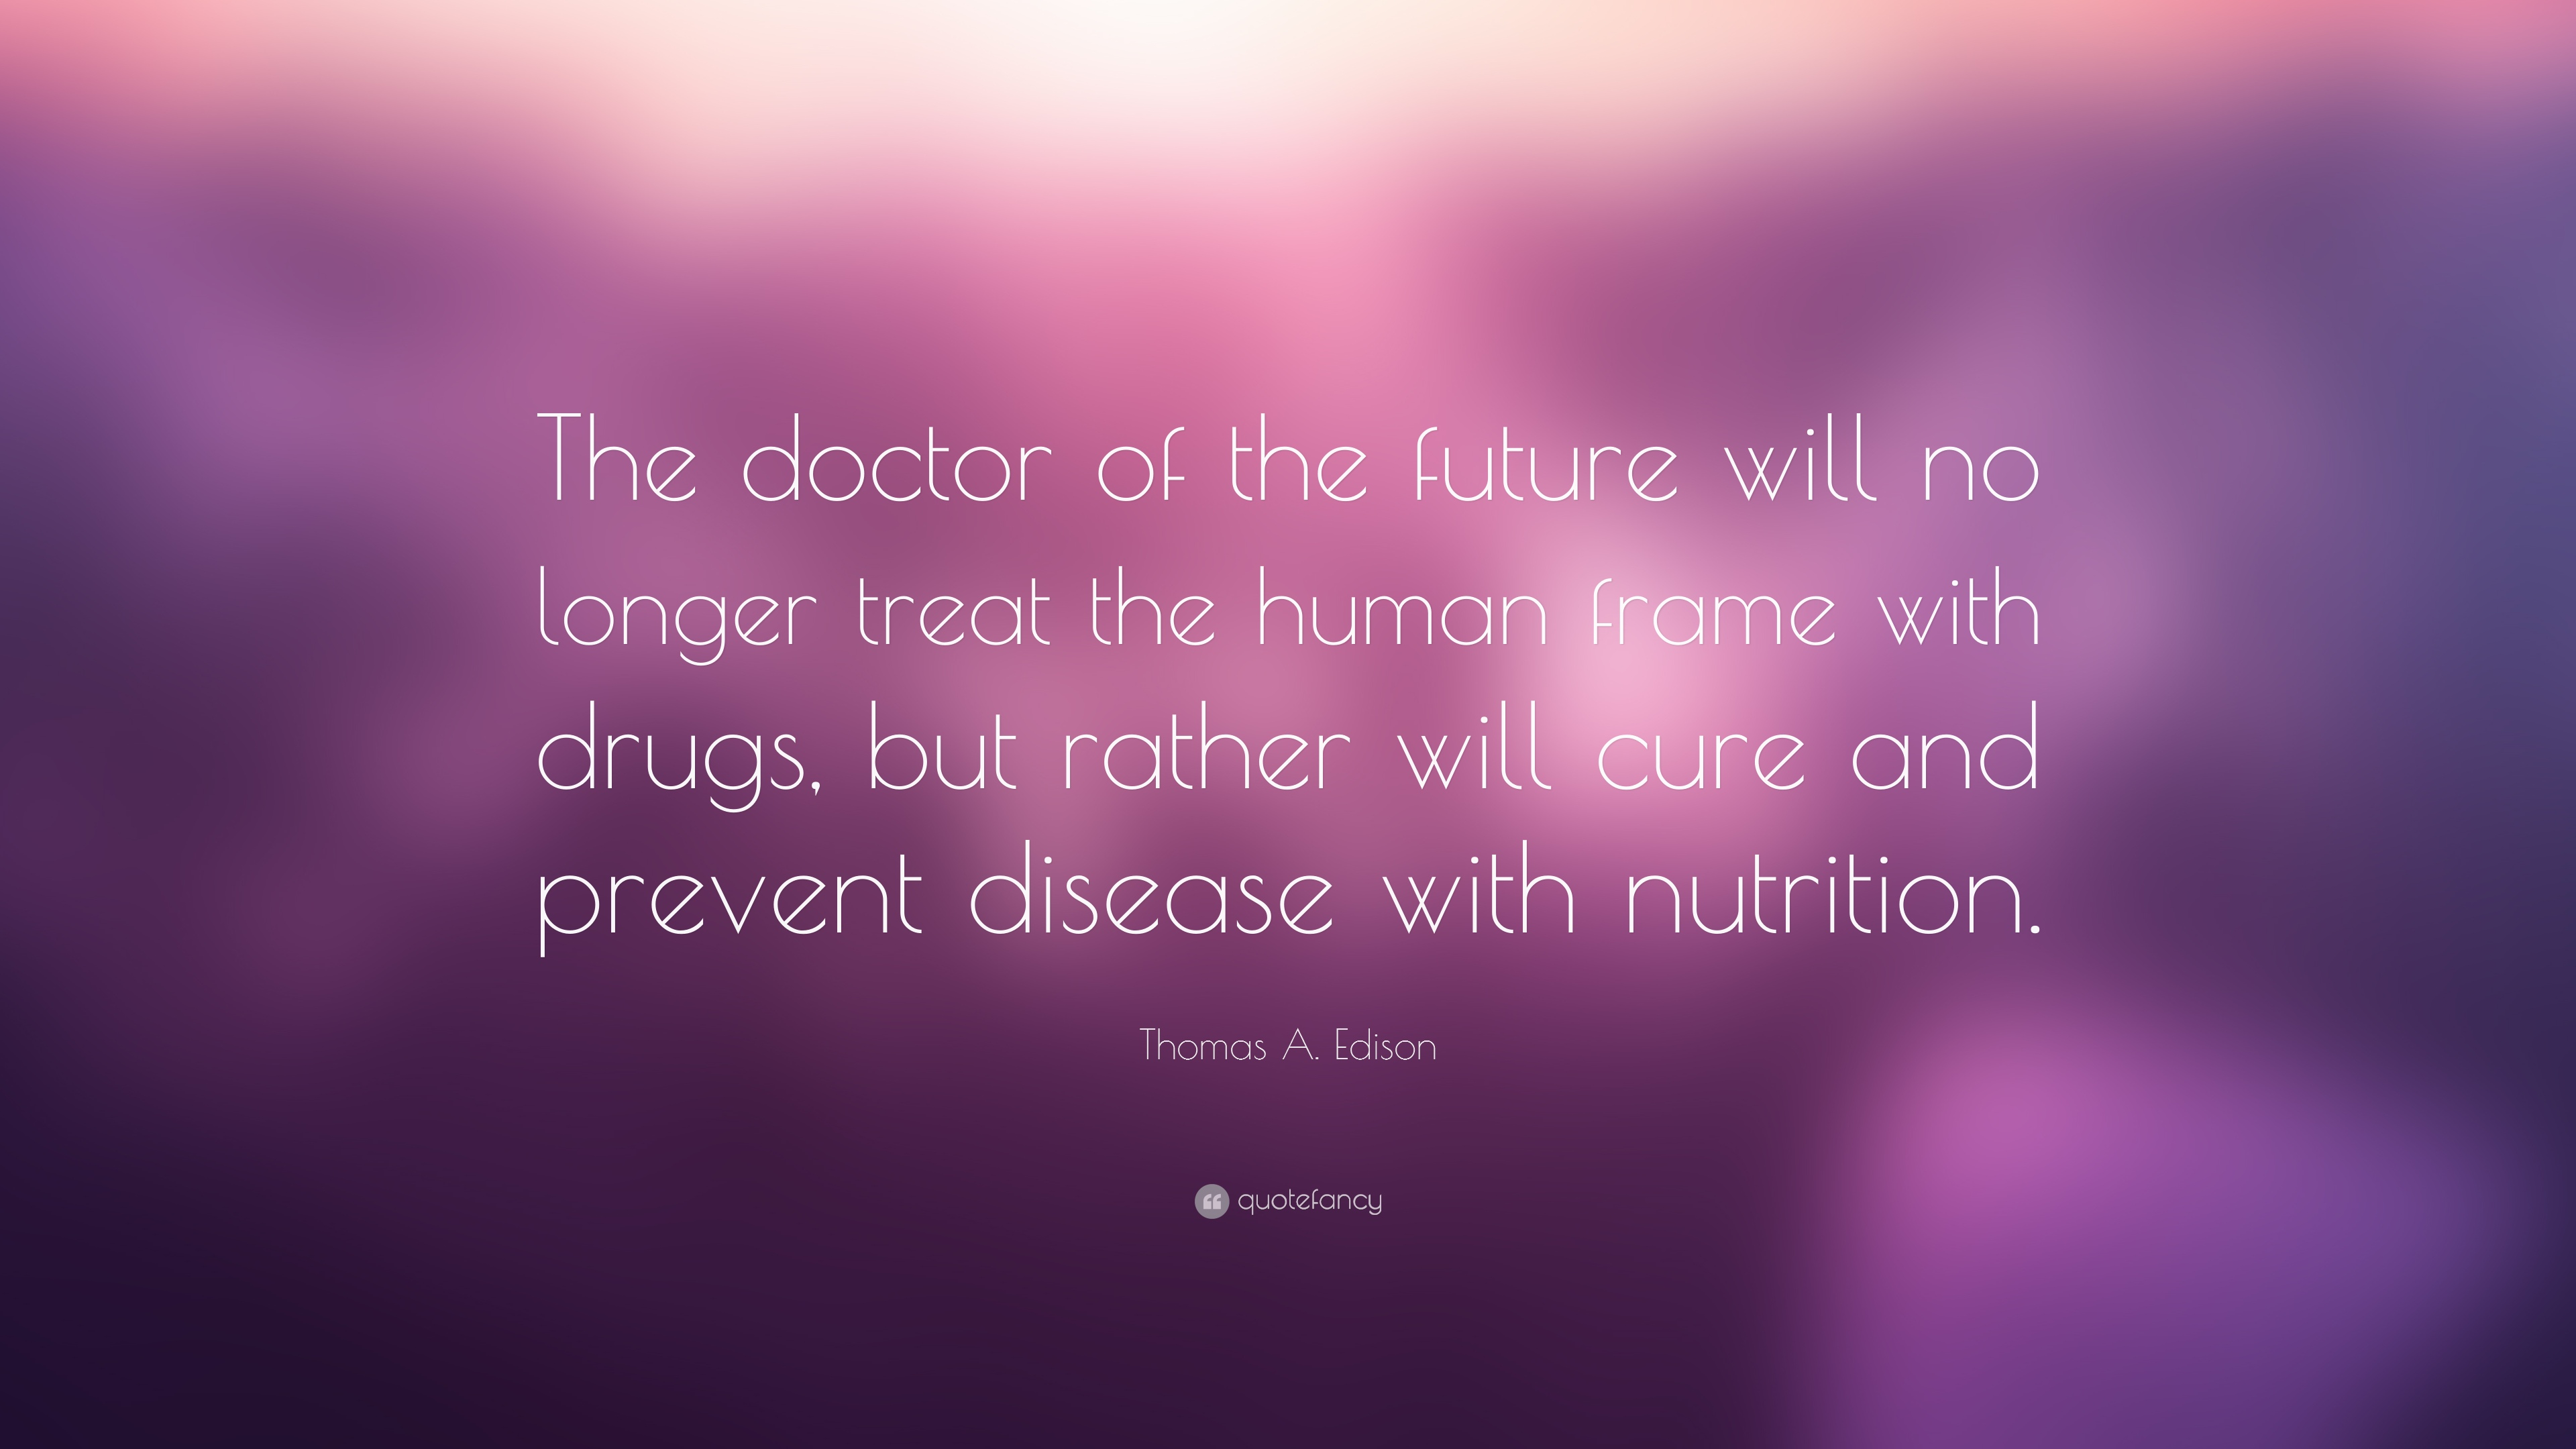 Thomas A Edison Quote The Doctor Of The Future Will No Longer